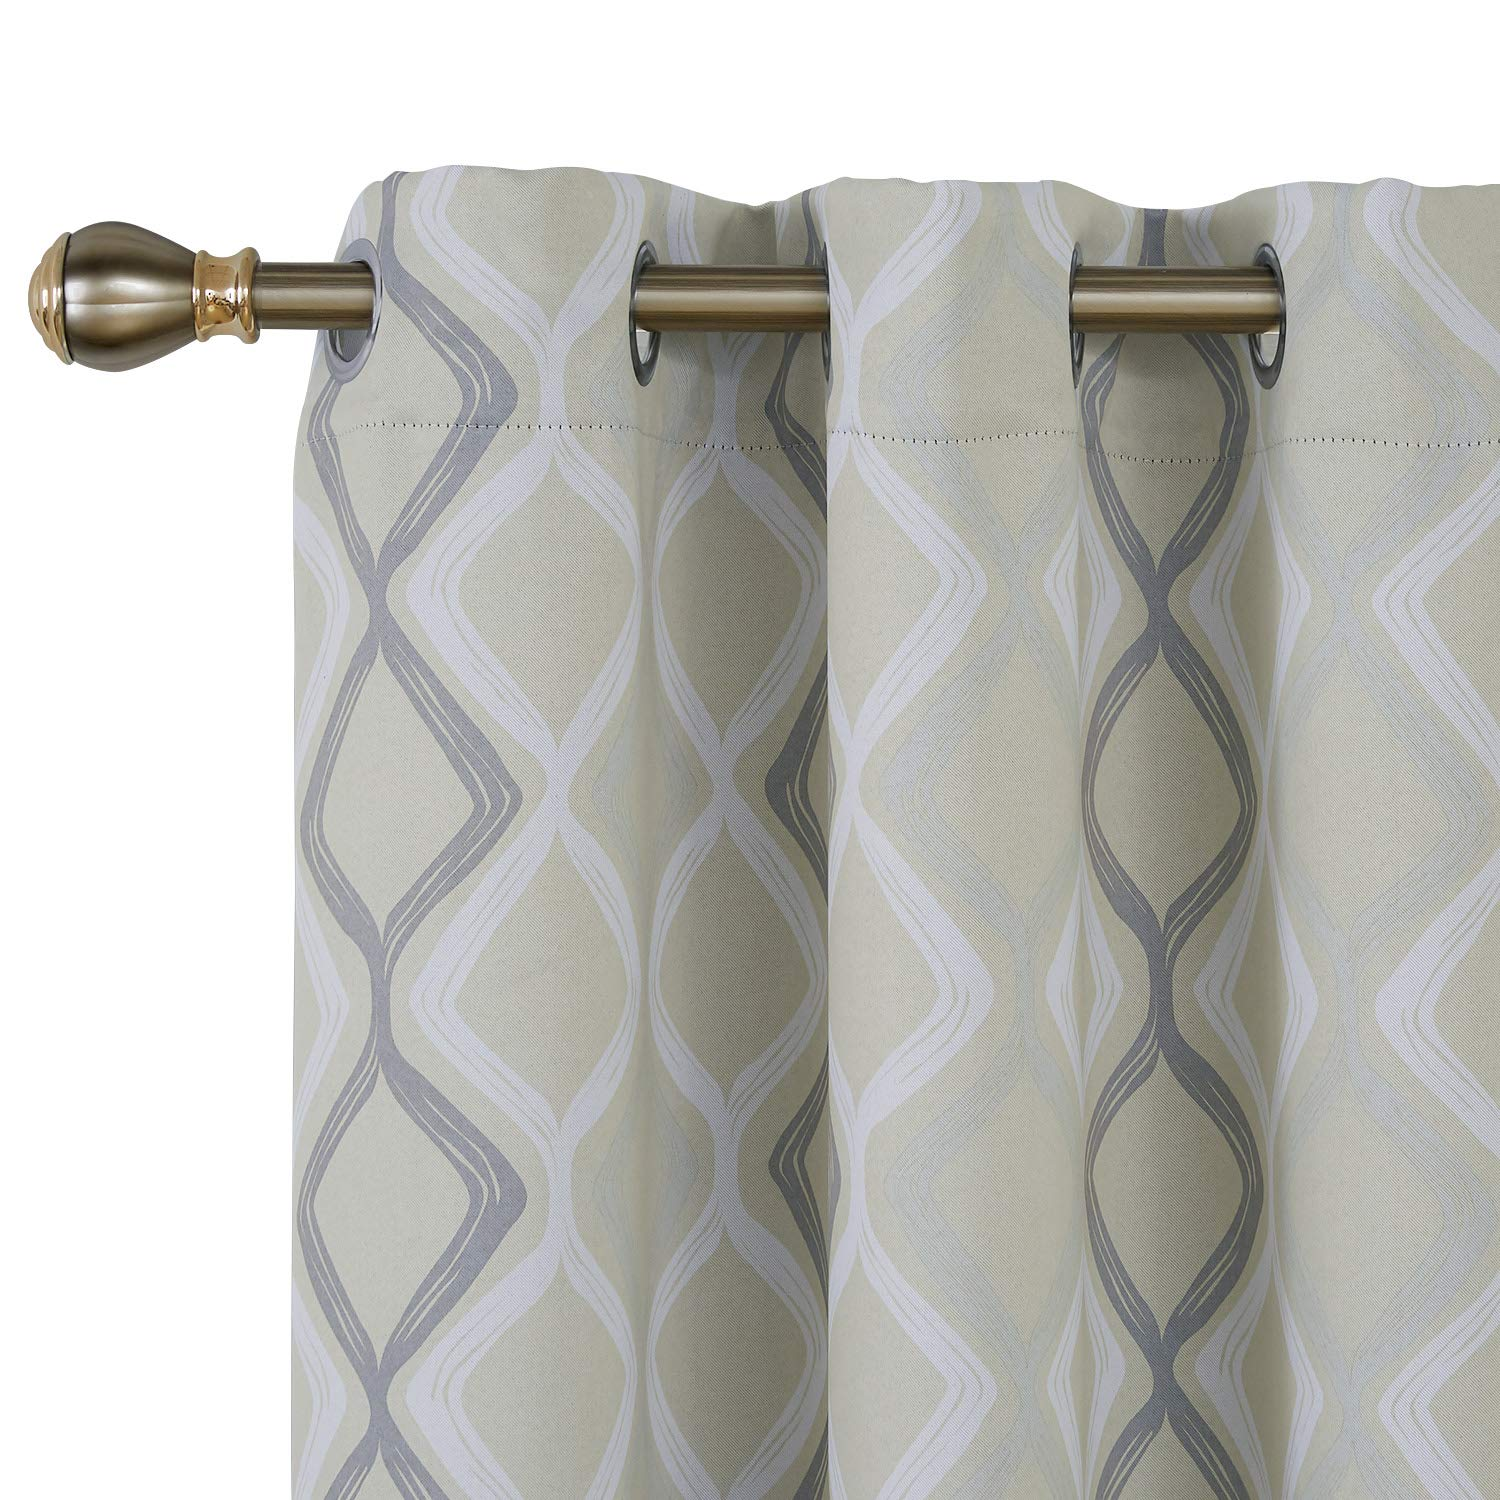 Deconovo Trellis Printed Blackout Curtain with Grommet Top Room Darkeing Curtains for Bedroom 42W x 95L Inch Beige White and Grey One Drape